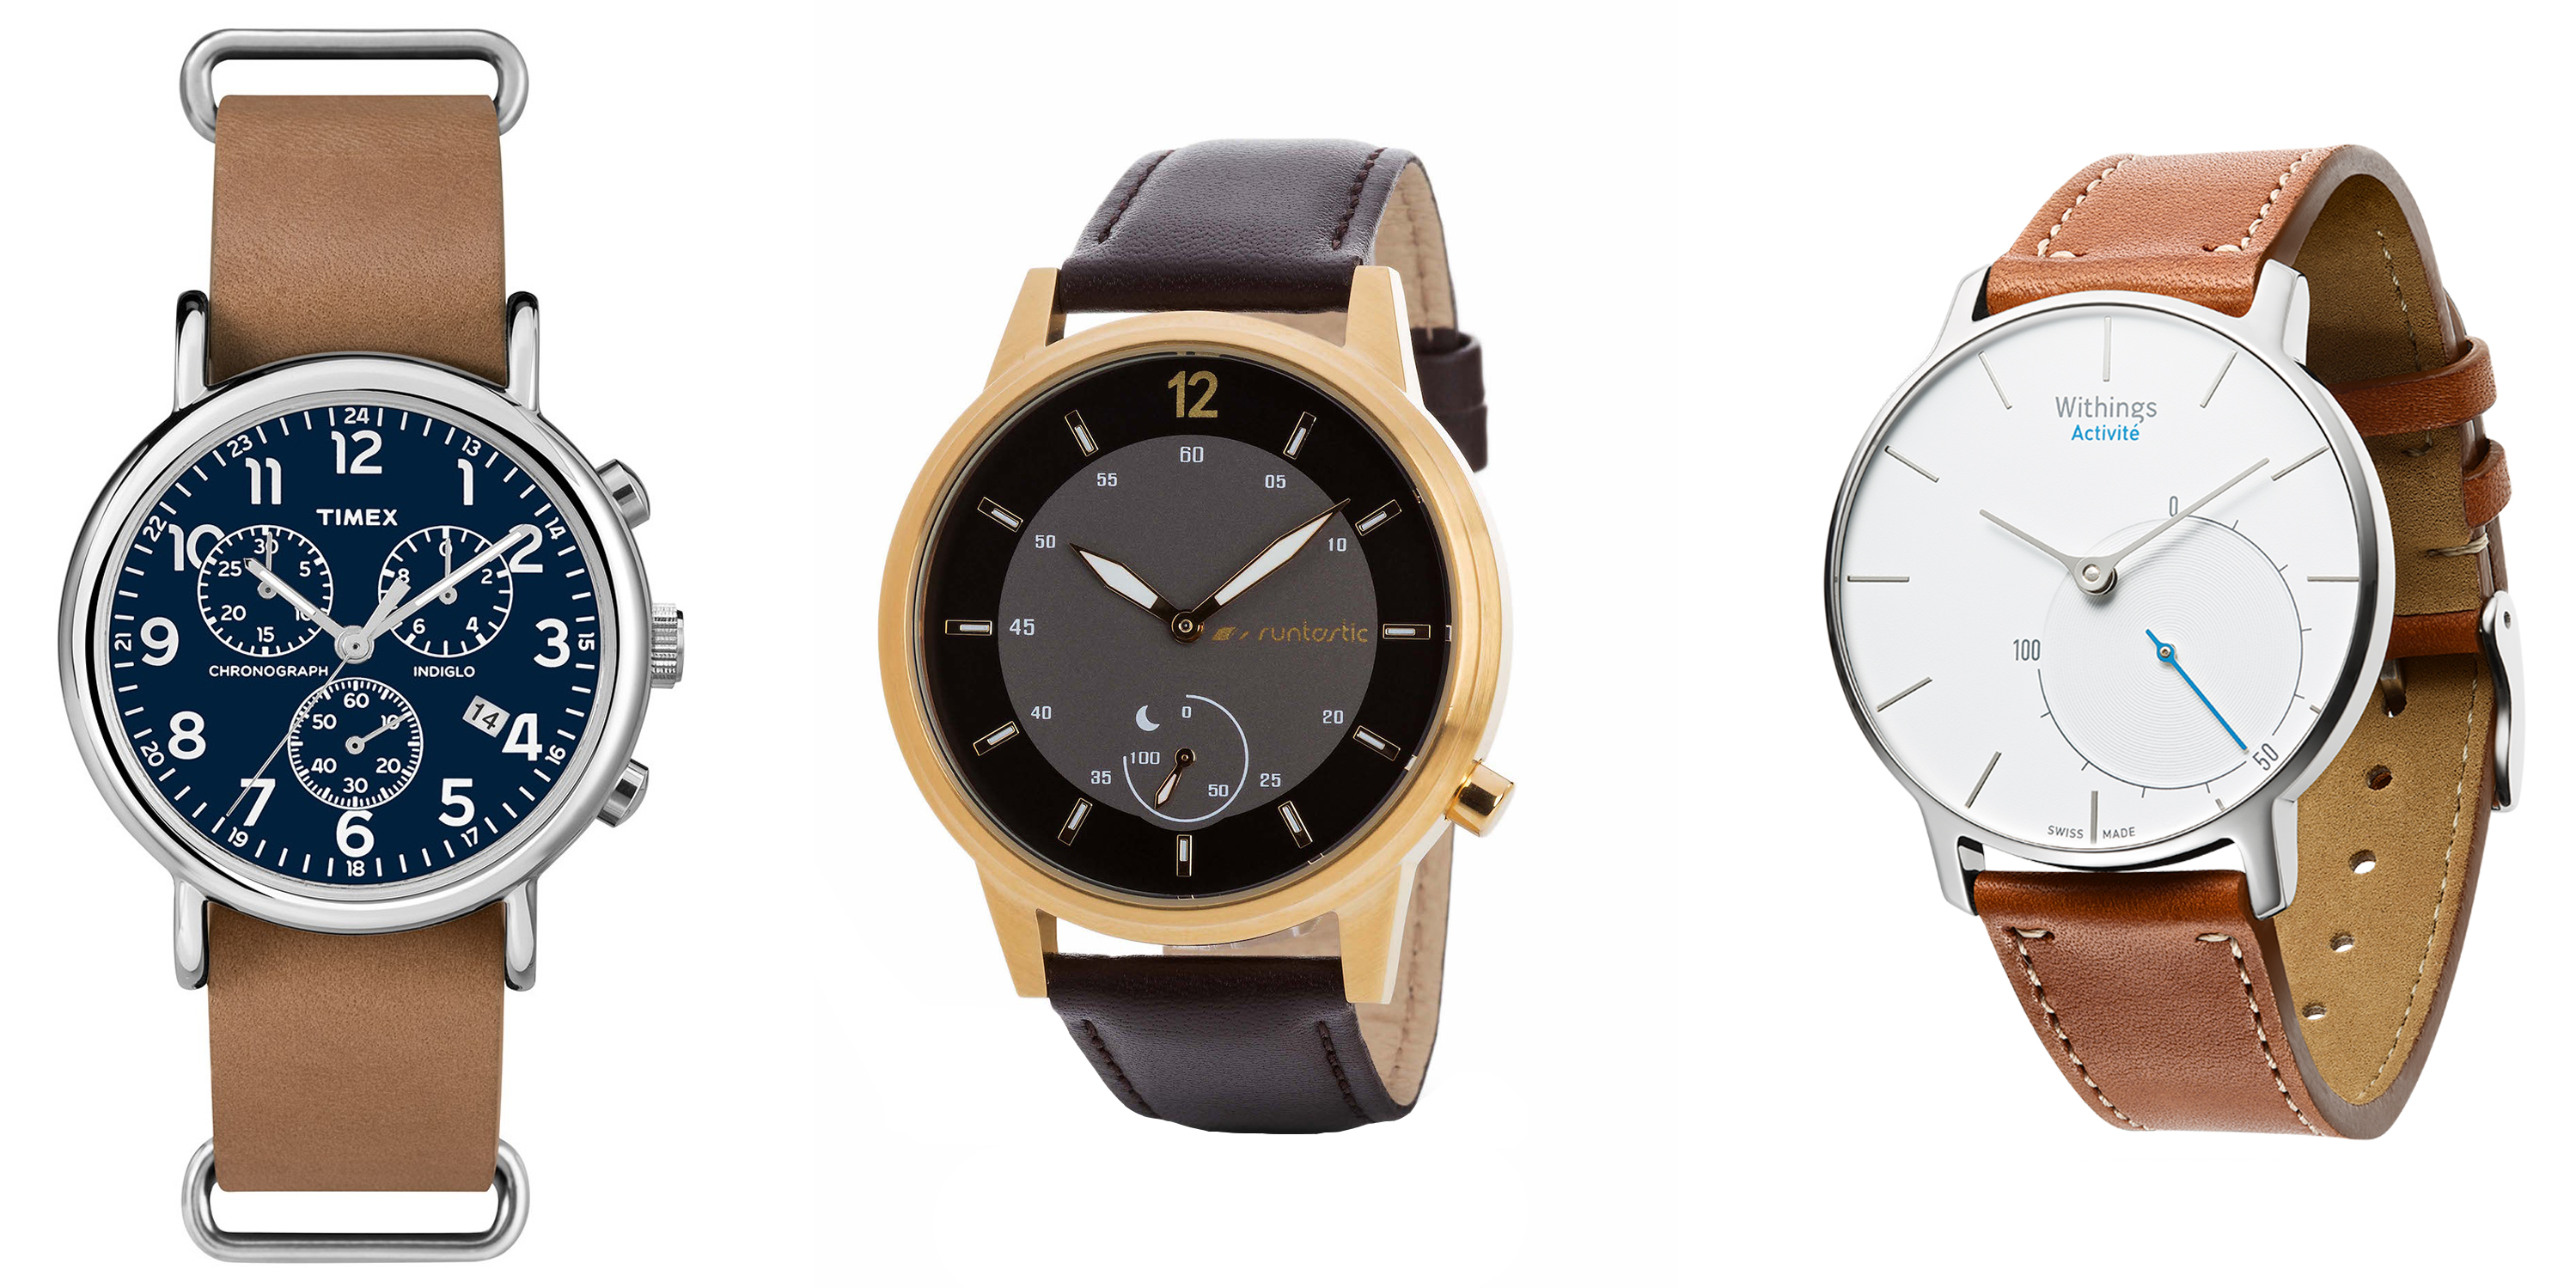 timex-withings-runtastic-comparison